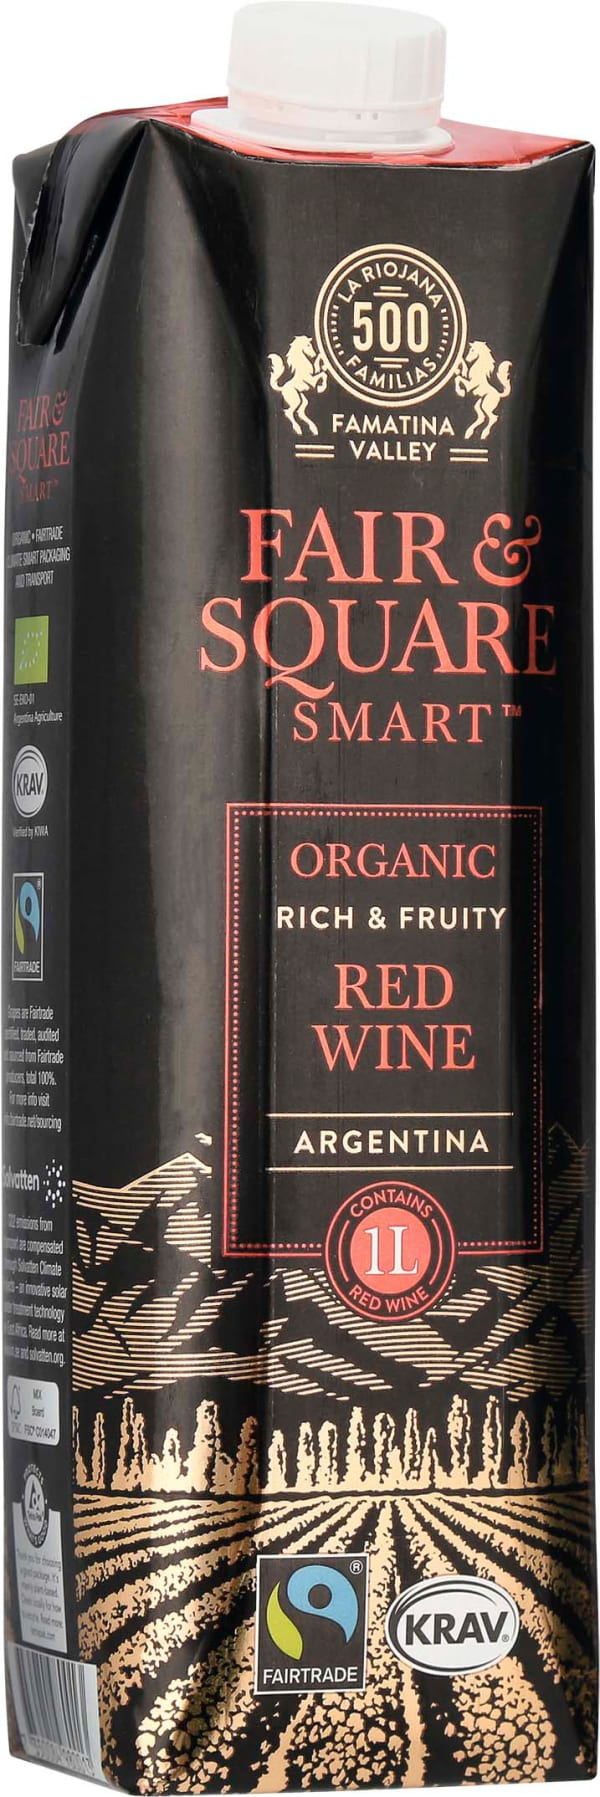 Fair & Square Red 2019 carton package